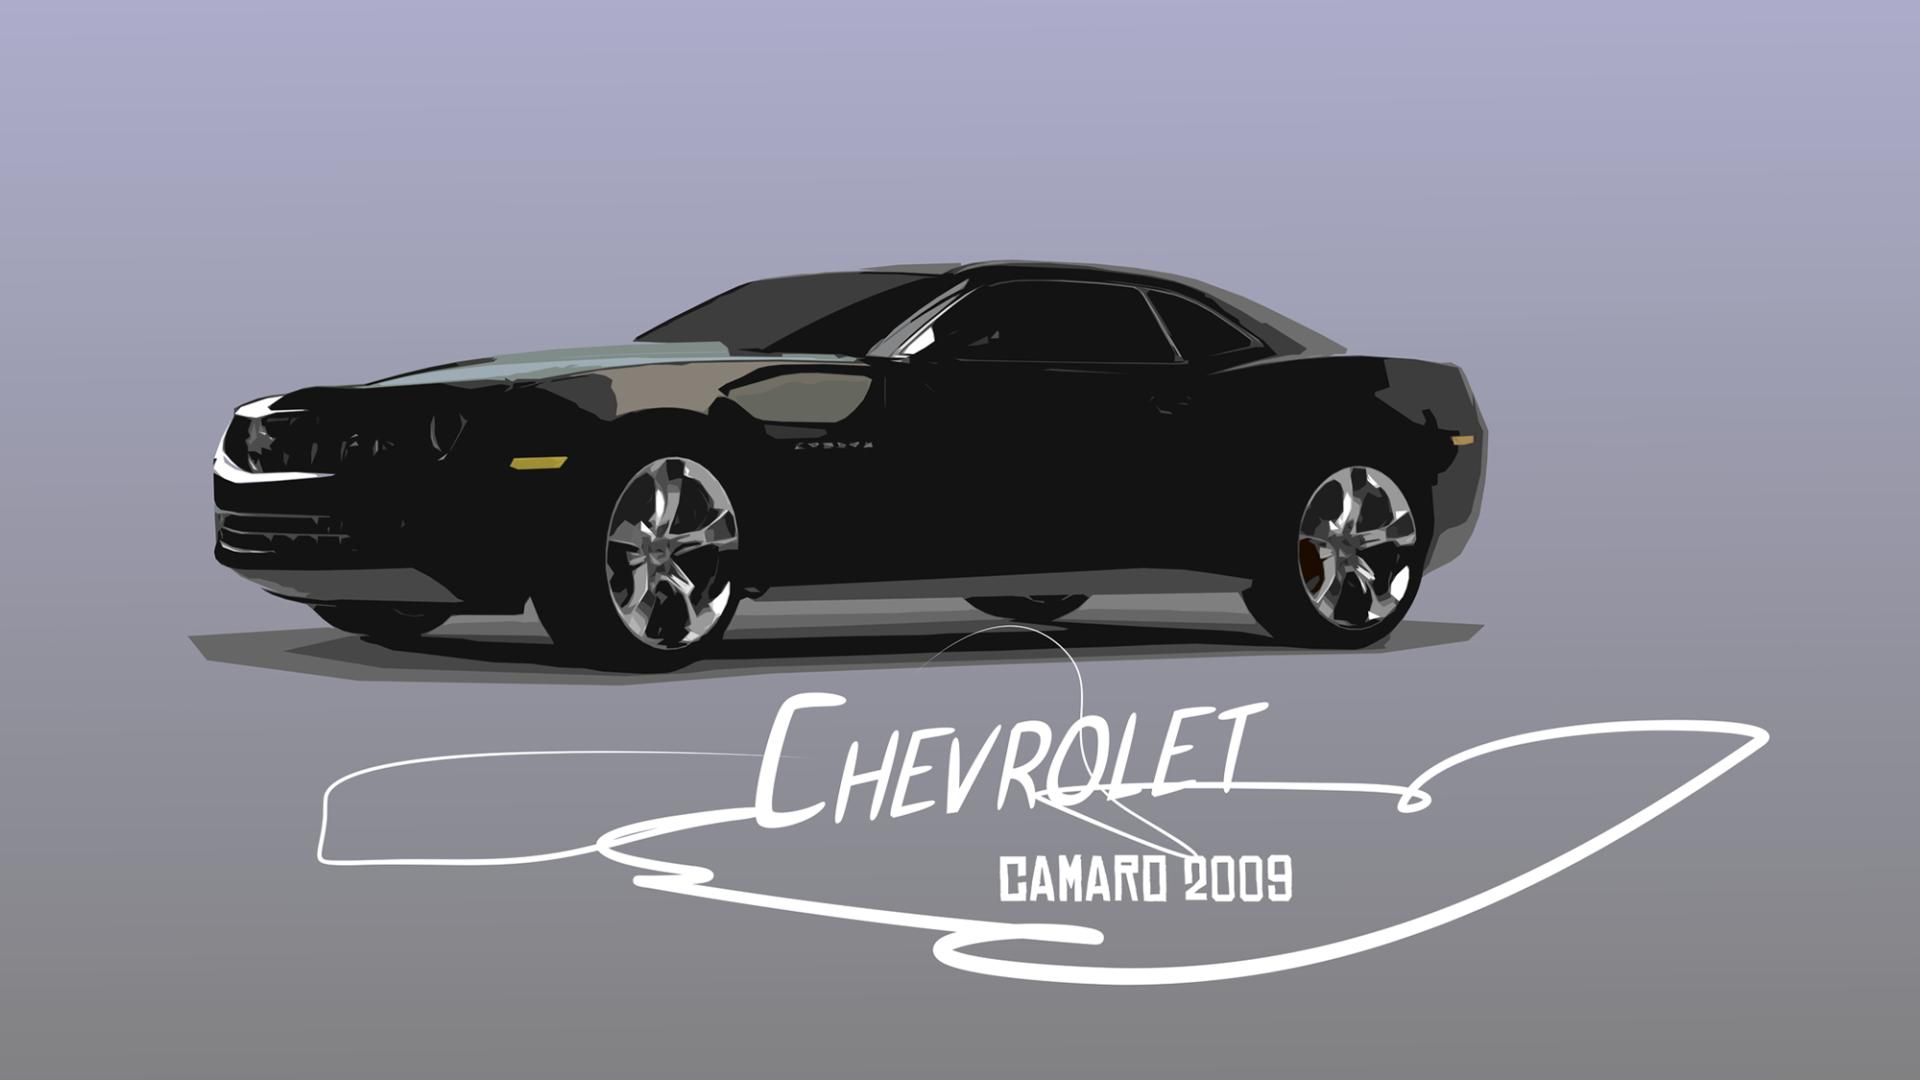 chevrolet camaro ss wallpaper hd download